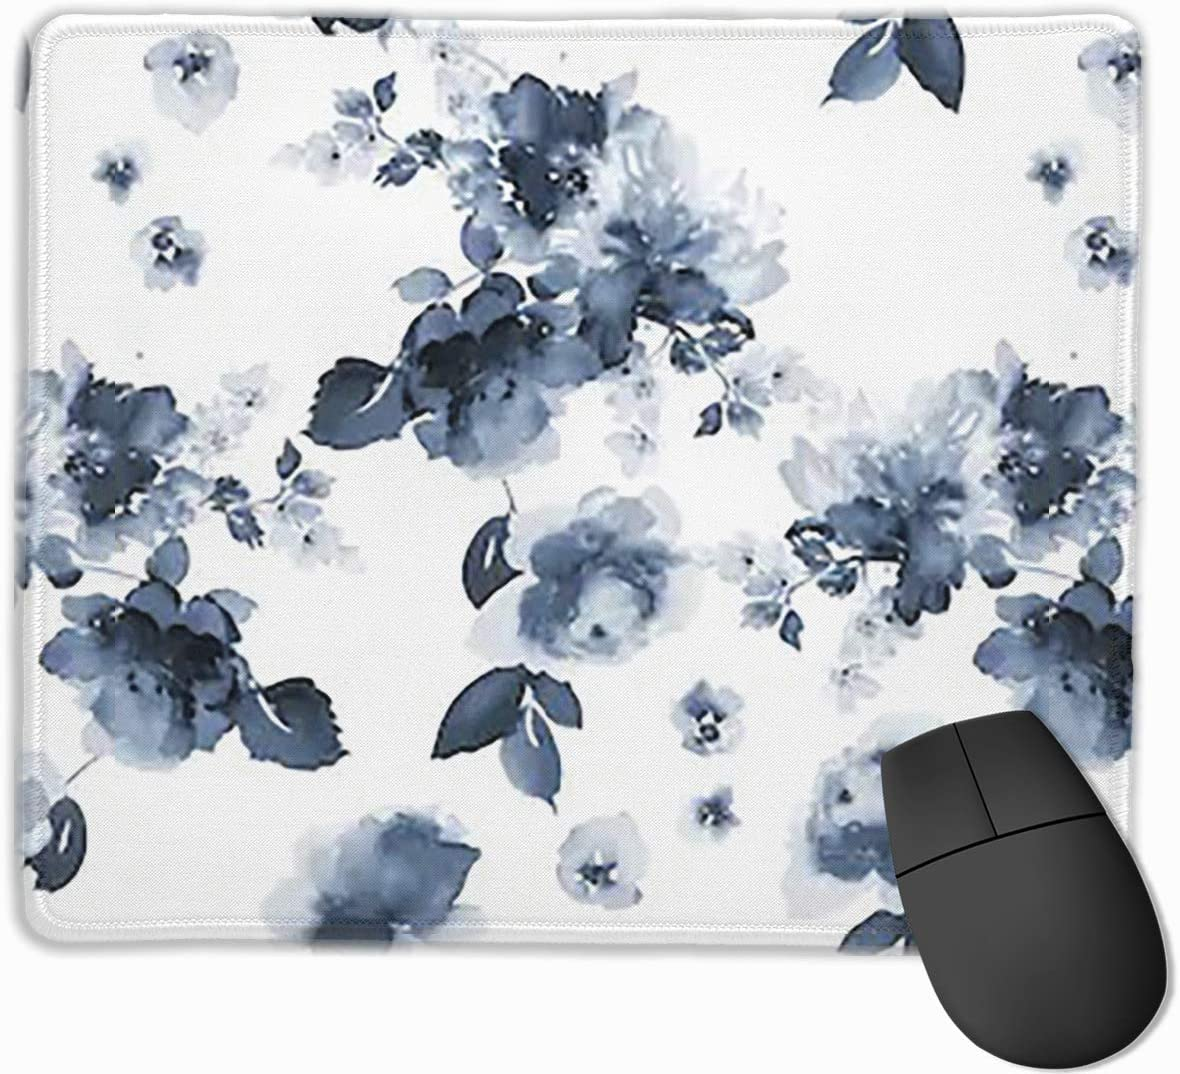 2530 Joyce-life Summer Flowers Mouse Pads for Computers Laptop Non-Slip Rubber Base Stitched Edge Waterproof Office Mouse Pad Office Gaming Computer at Home Or Work Size